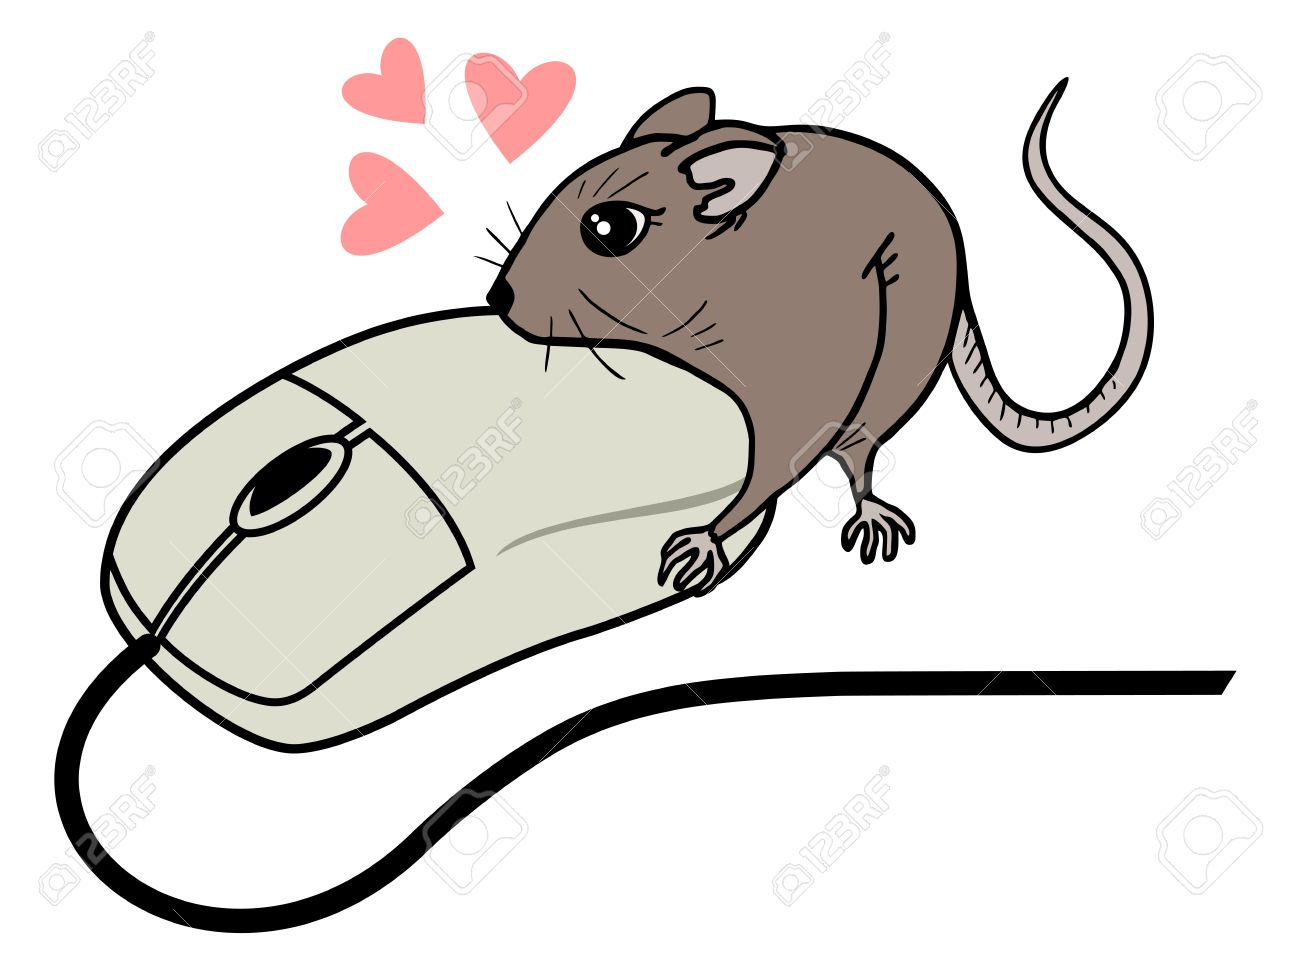 1300x962 Funny Computer Mouse Draw Royalty Free Cliparts, Vectors, And